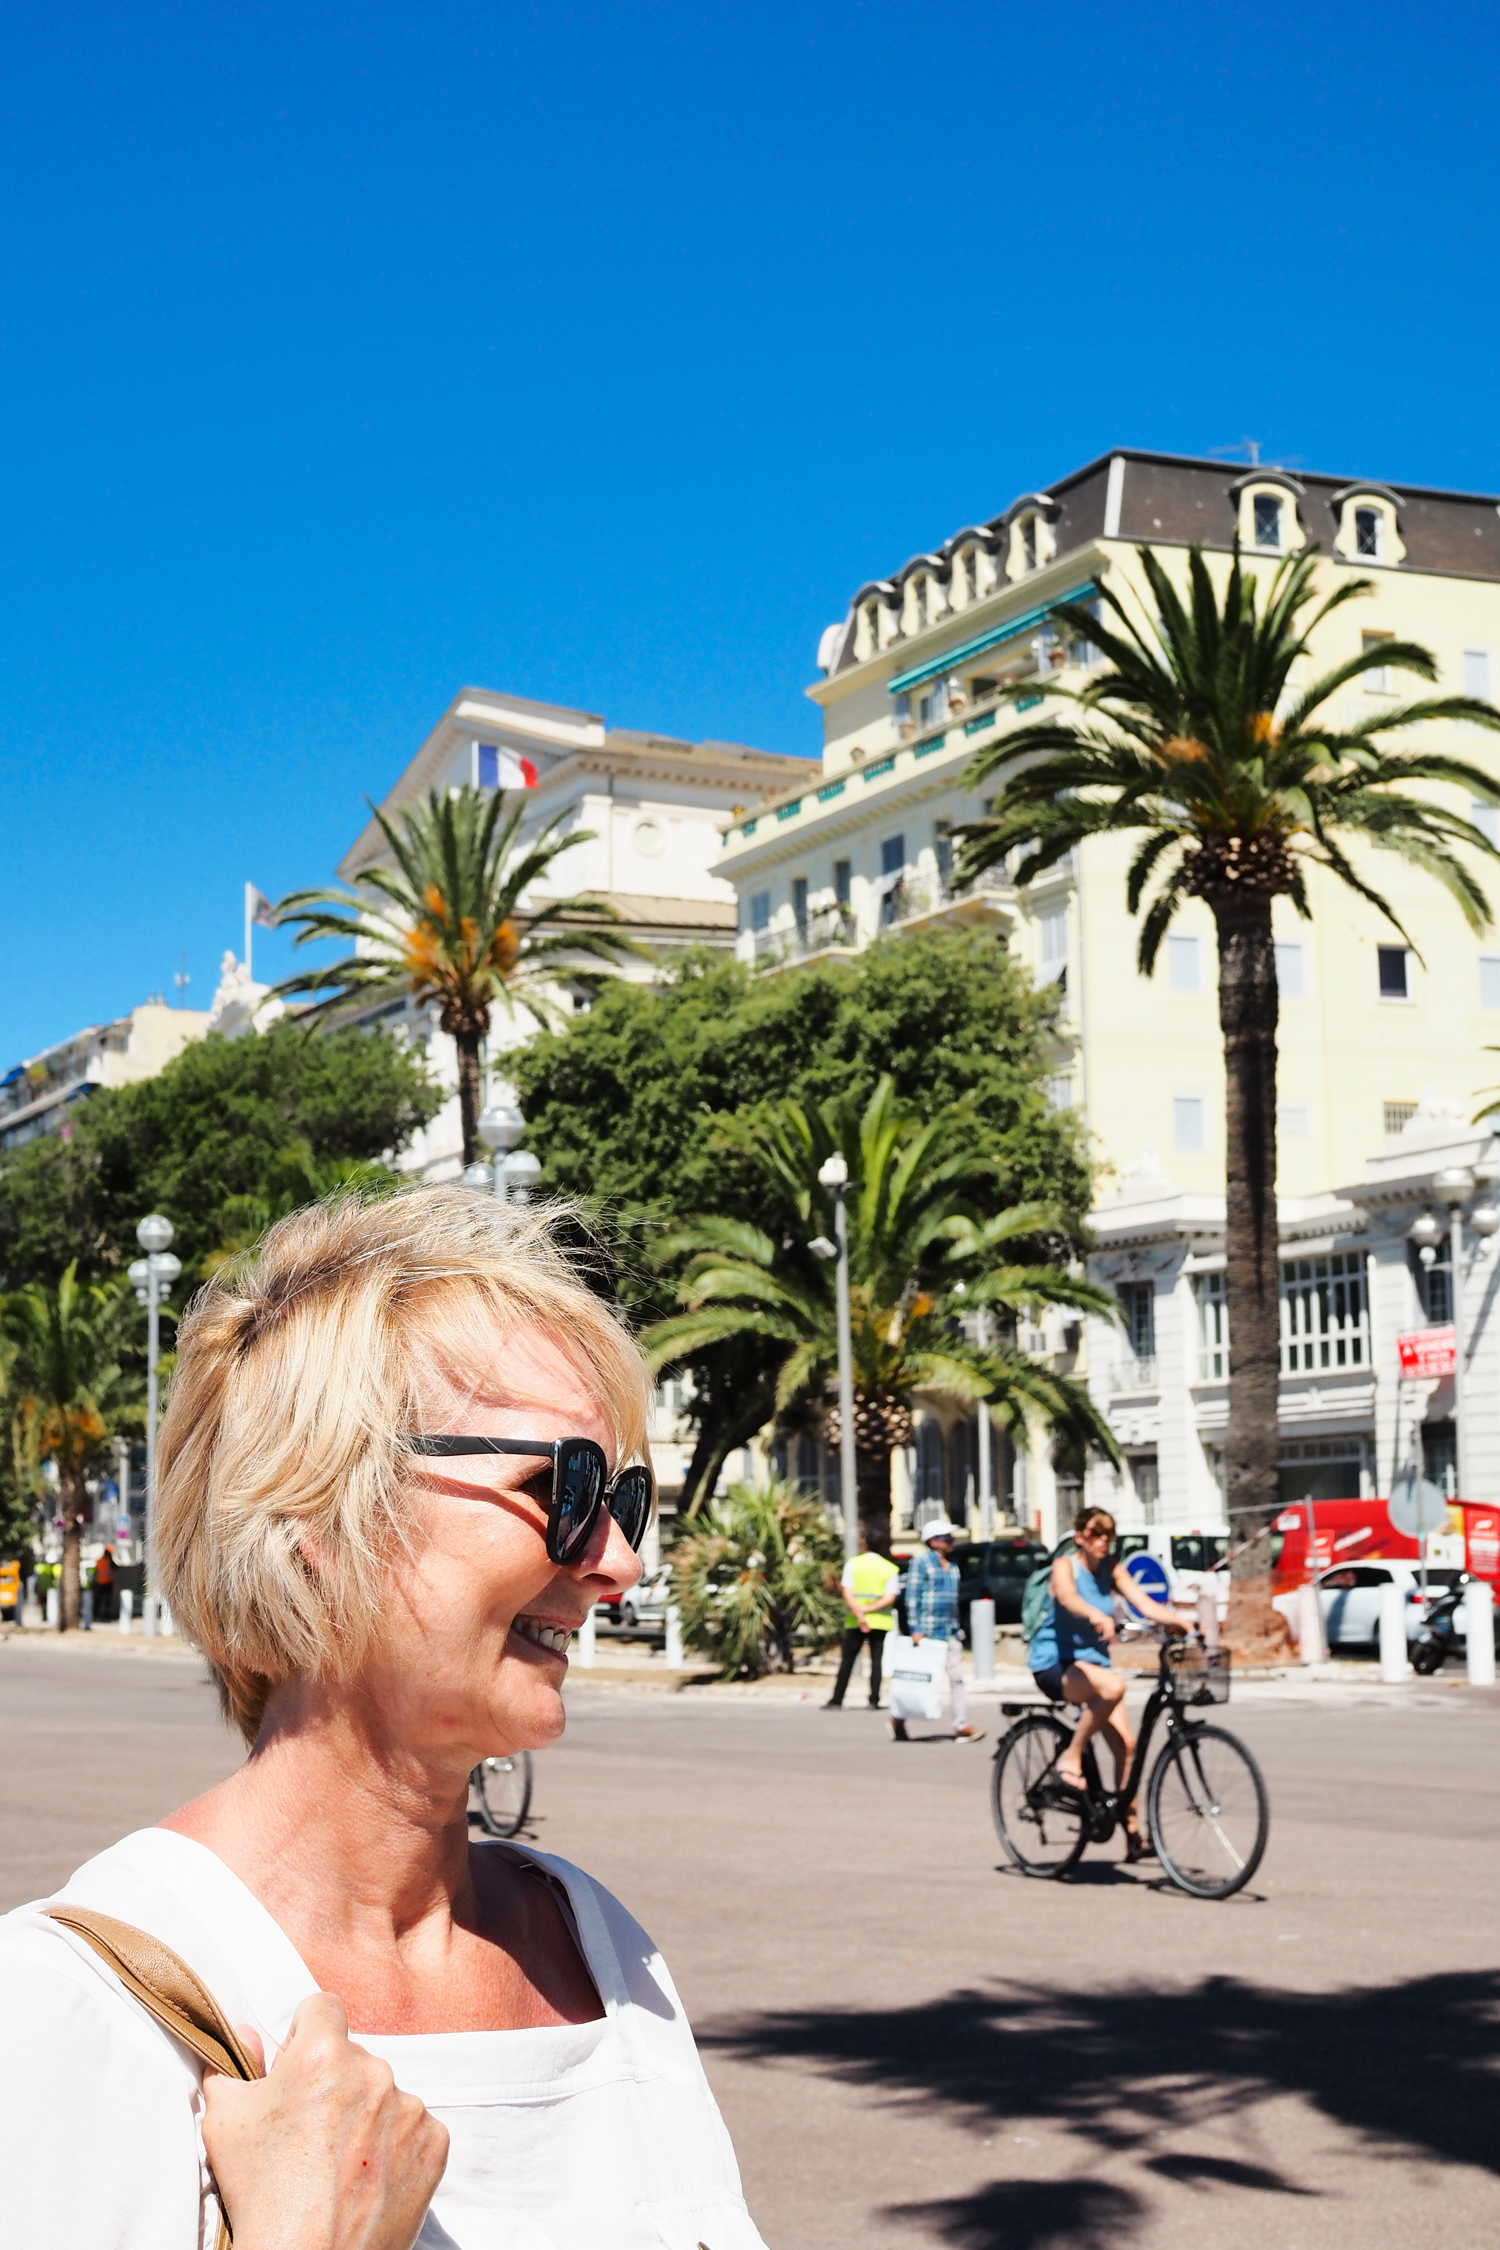 Photo diary of my trip to Nice in the south of France with Airbnb